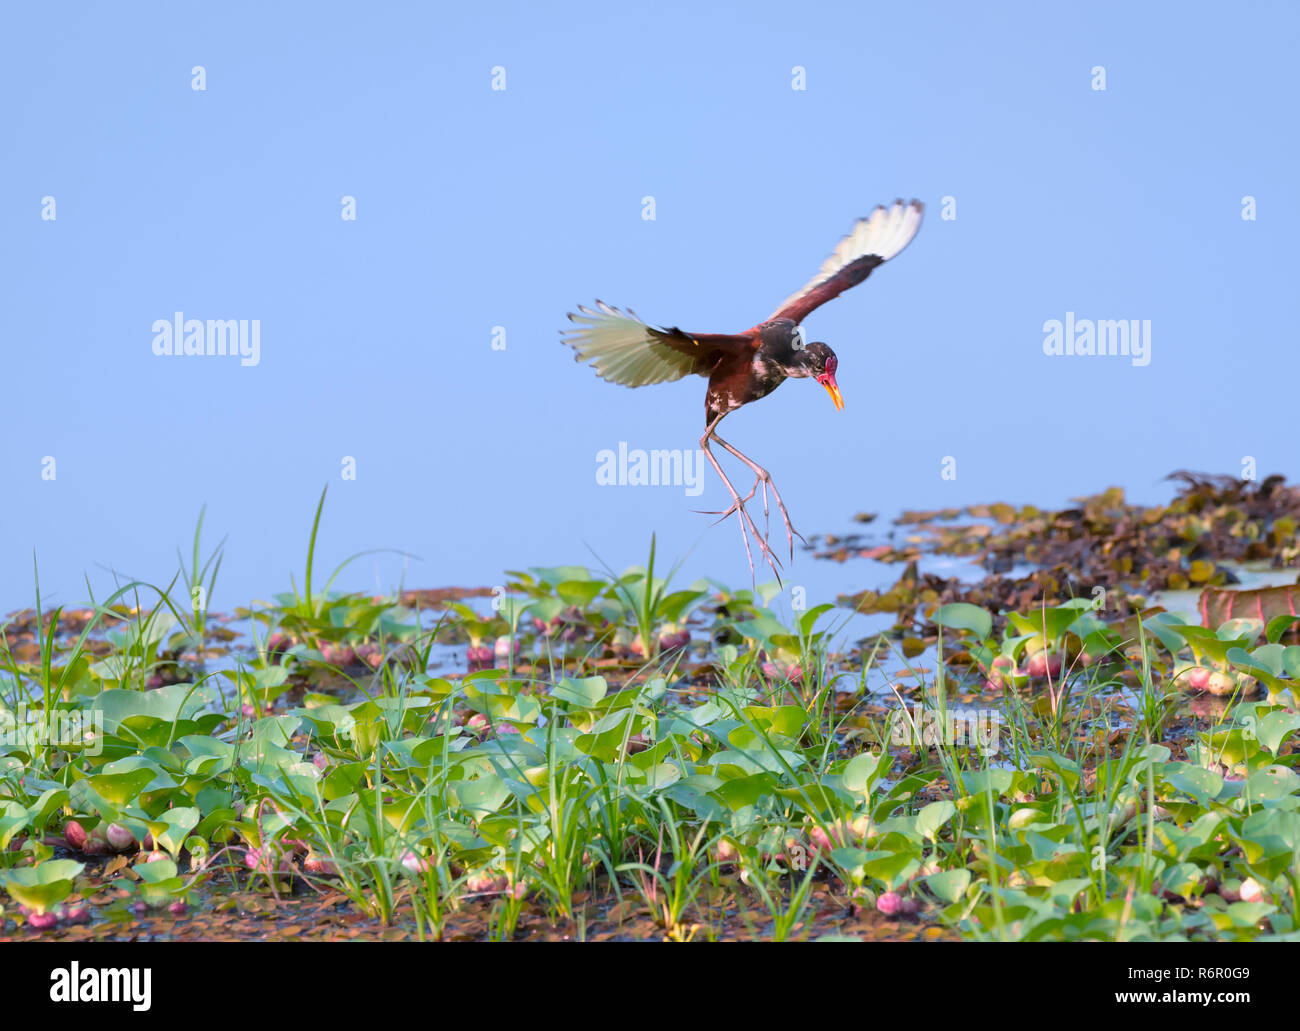 Wattled Jacana (Jacana jacana) in flight, Pantanal, Mato Grosso, Brazil Stock Photo